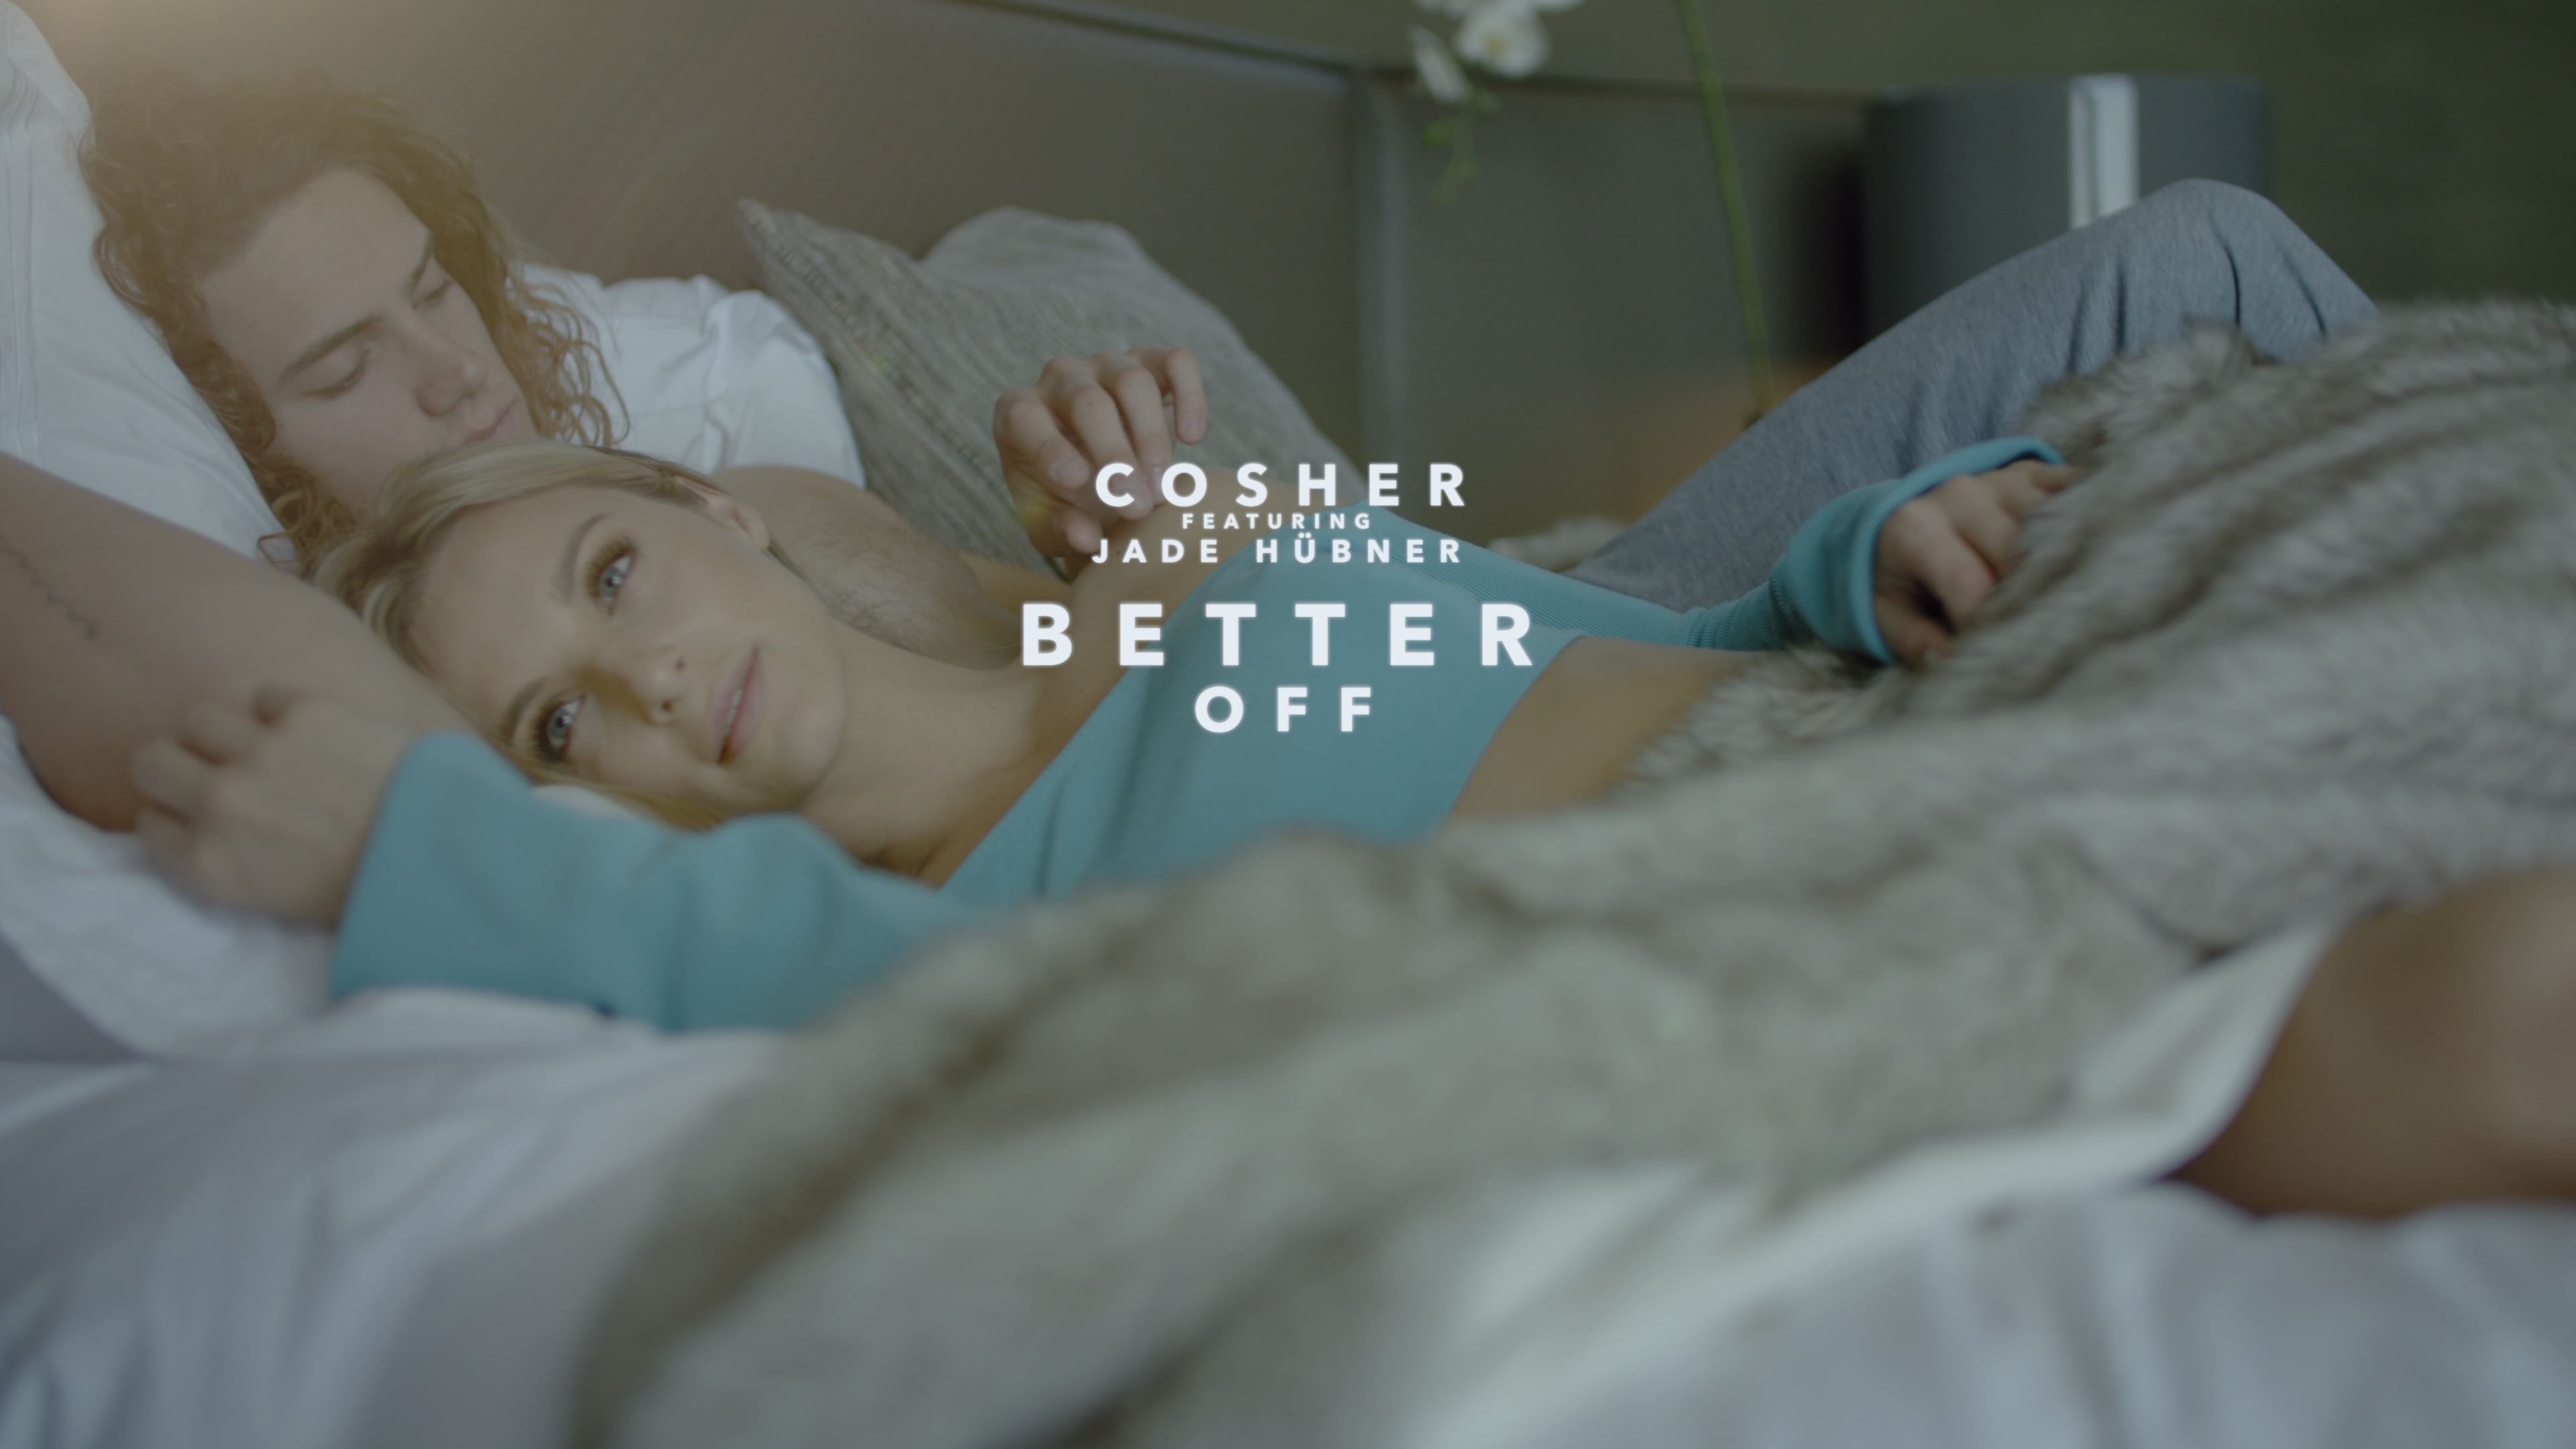 'Better Off' Music Video by Cosher